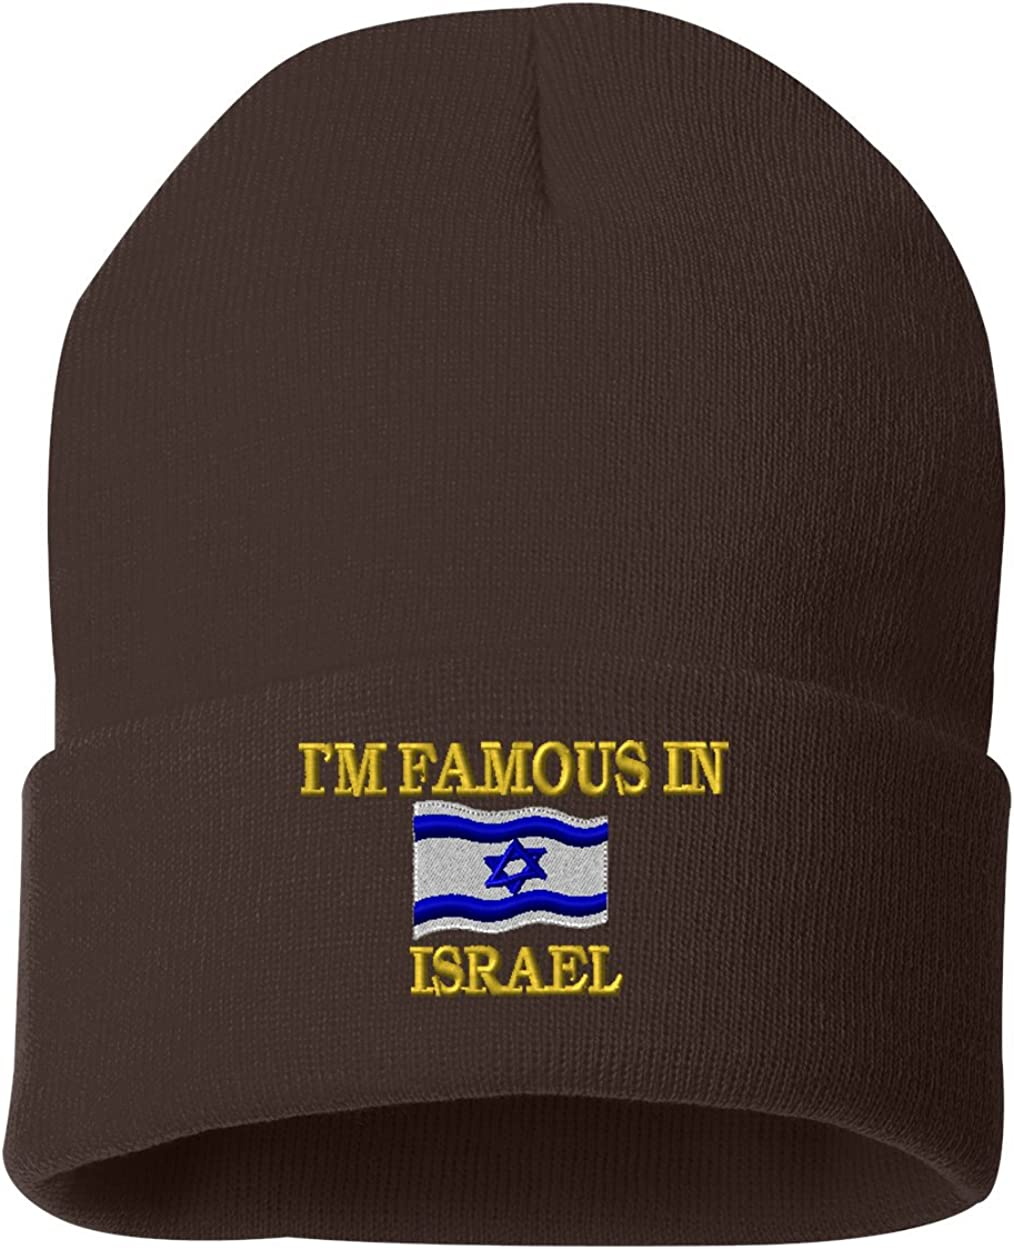 IM FAMOUS IN ISRAEL Custom Personalized Embroidery Embroidered Beanie